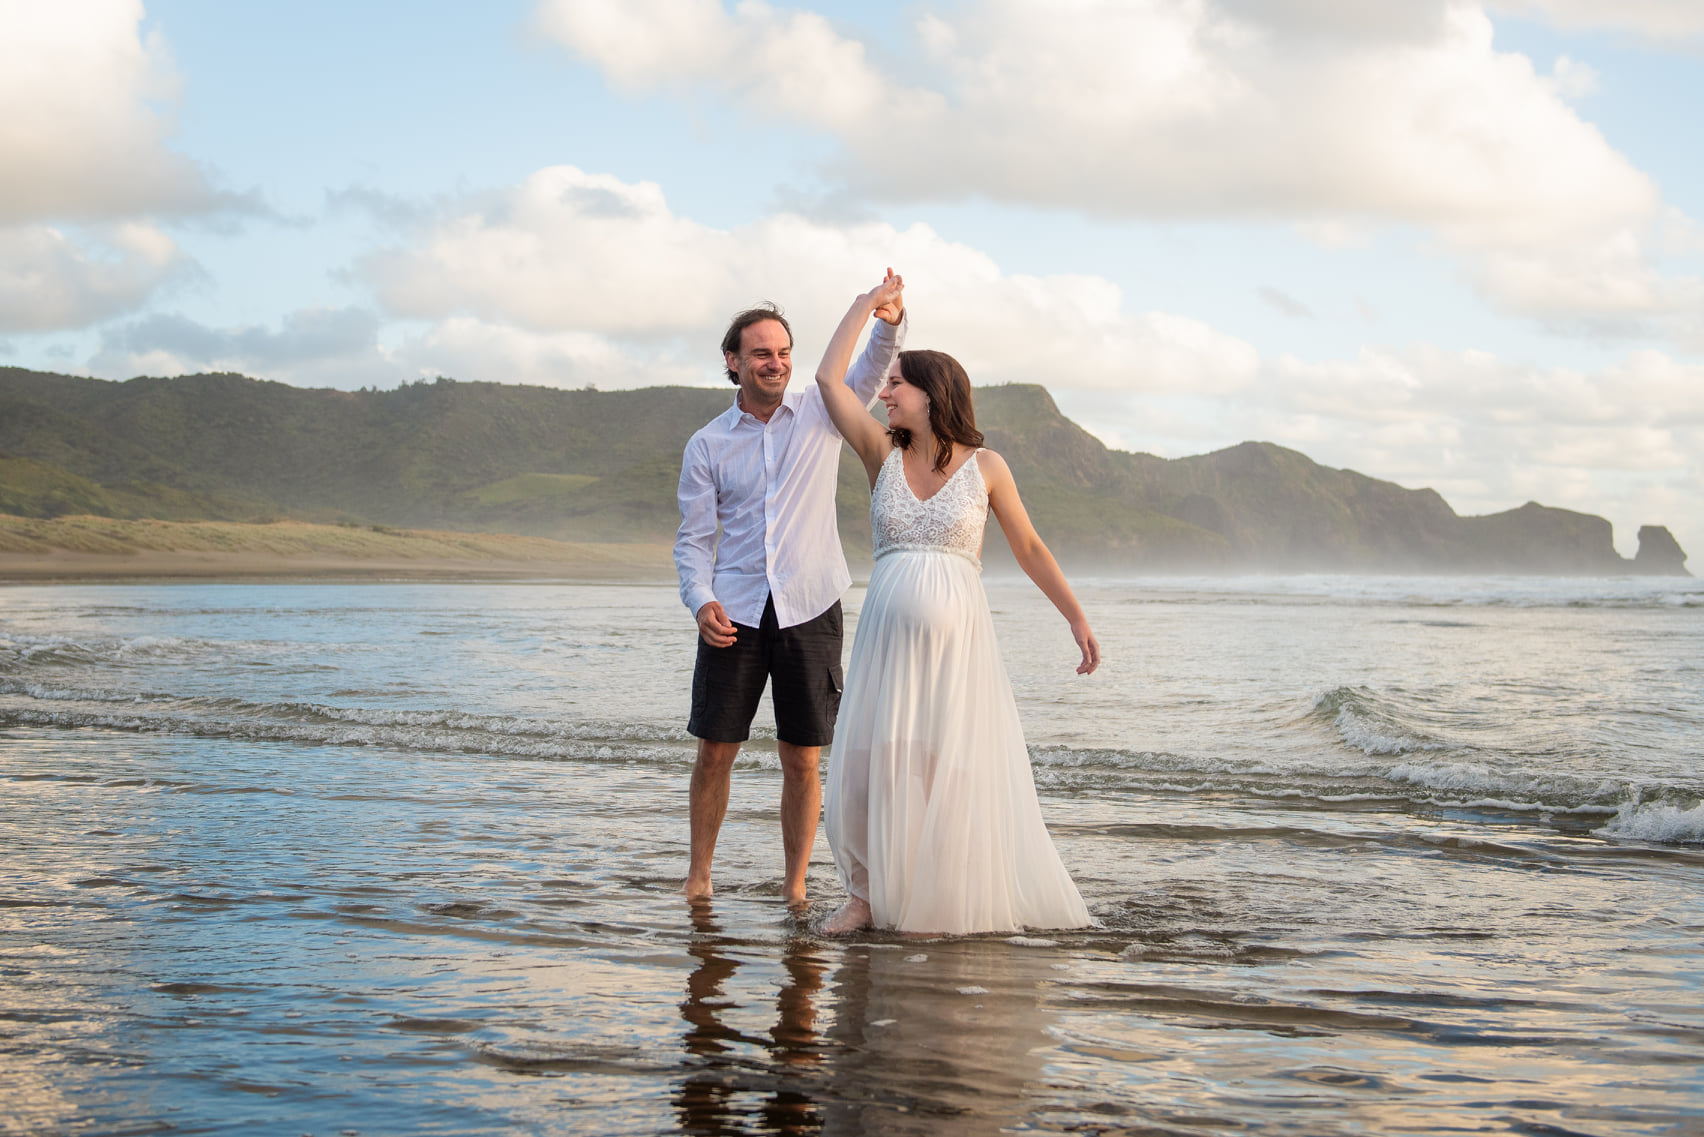 maternity photography at beach by auckland photographer siobhan kelly photography